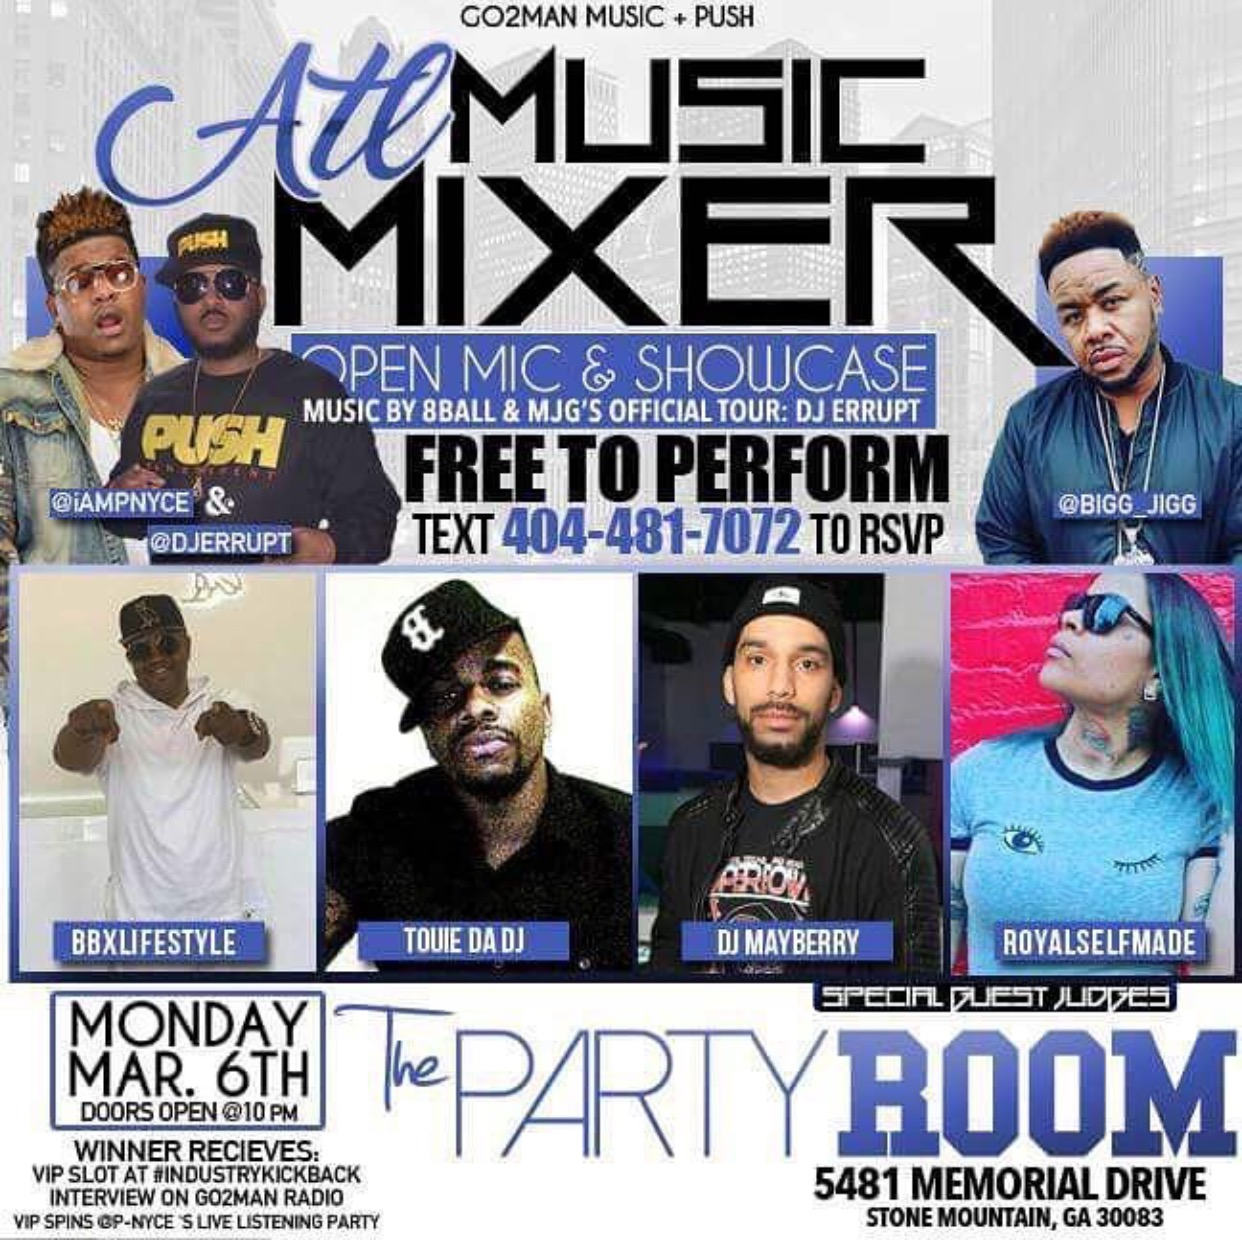 (March 7th )ATL Music Mixer at The Party Room in Atlanta,GA